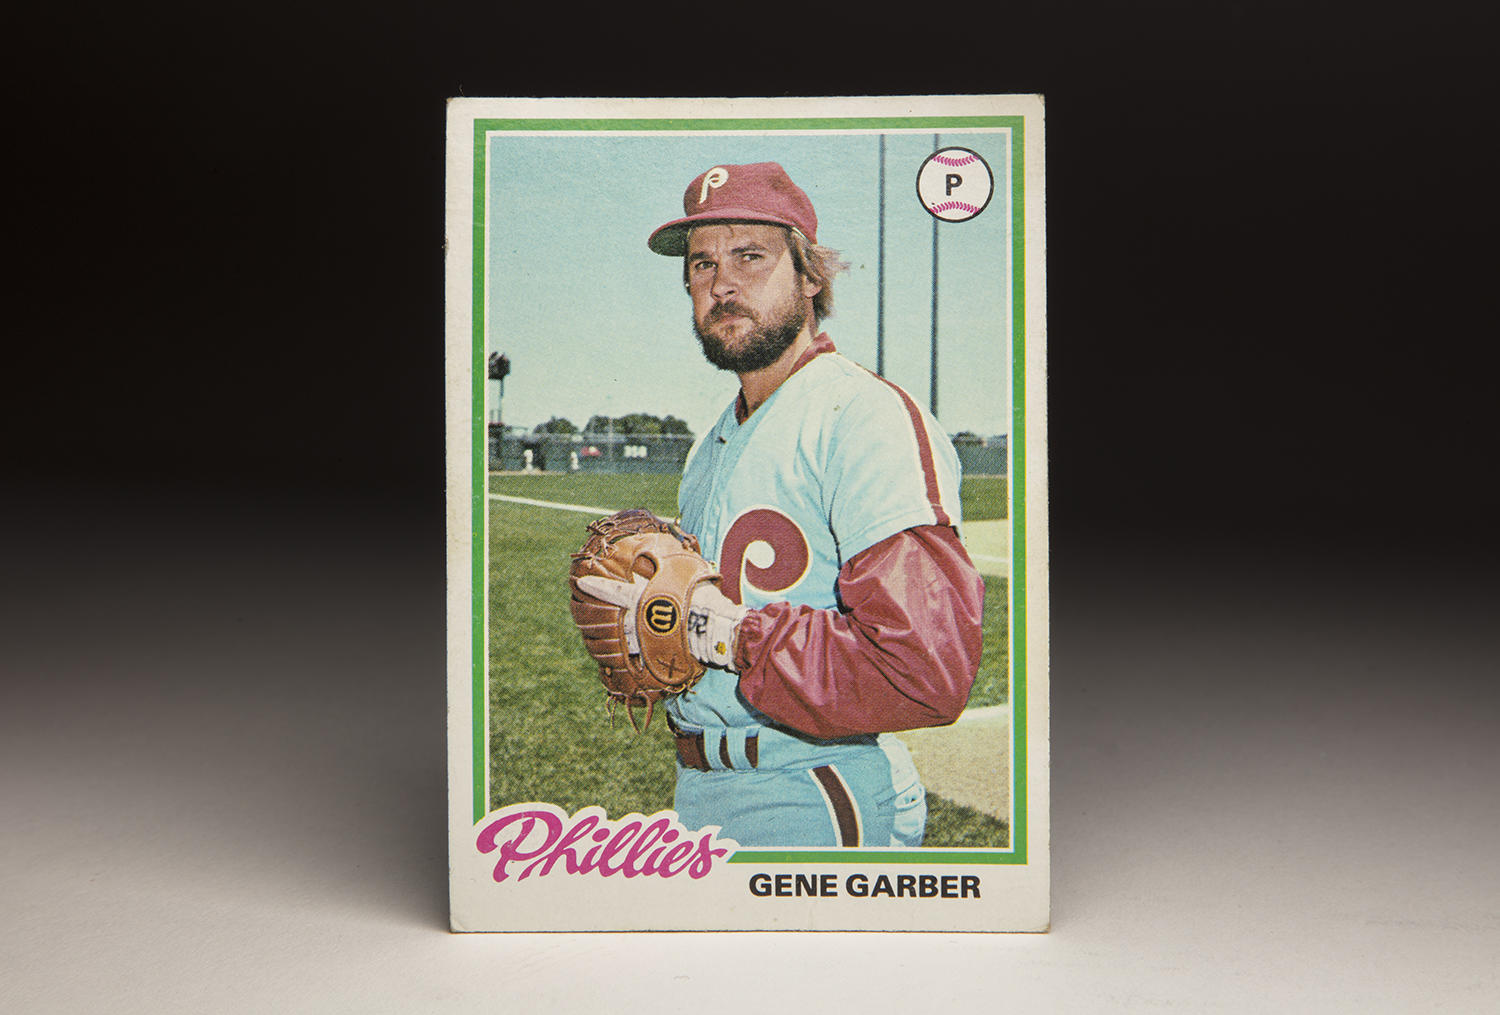 Gene Garber's beard and long-sleeved warm-up jacket made his 1978 Topps card easily identifiable. (Milo Stewart Jr. / National Baseball Hall of Fame and Museum)